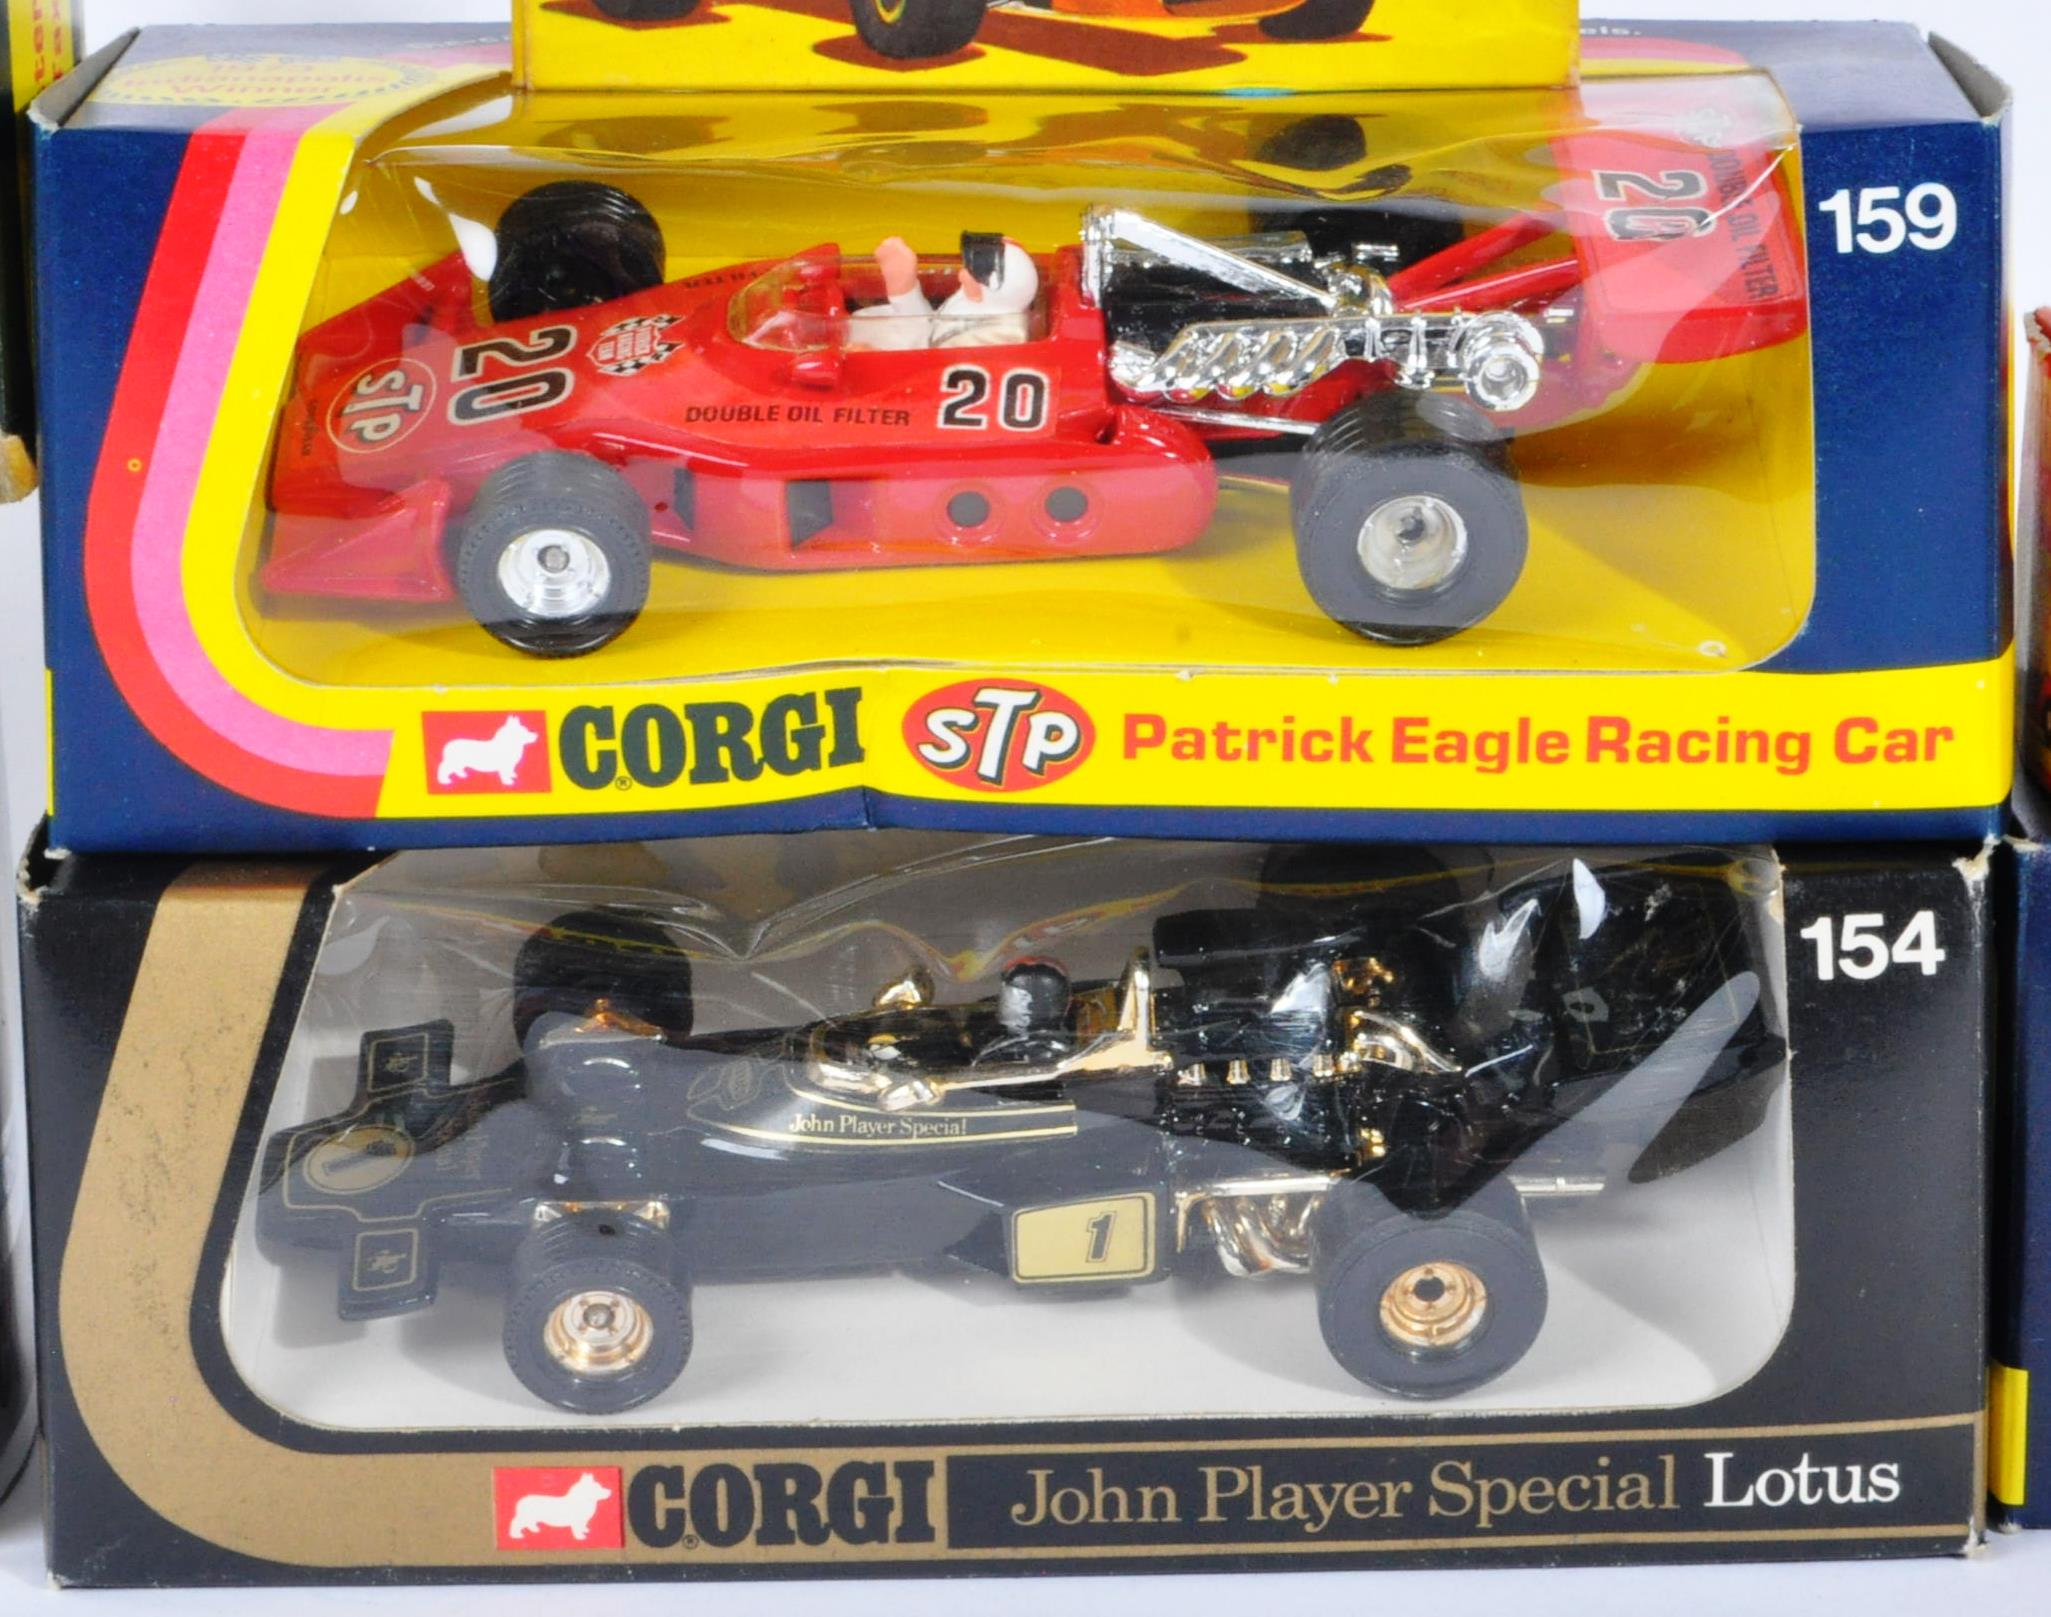 COLLECTION OF ASSORTED VINTAGE CORGI MADE DIECAST MODELS - Image 3 of 6